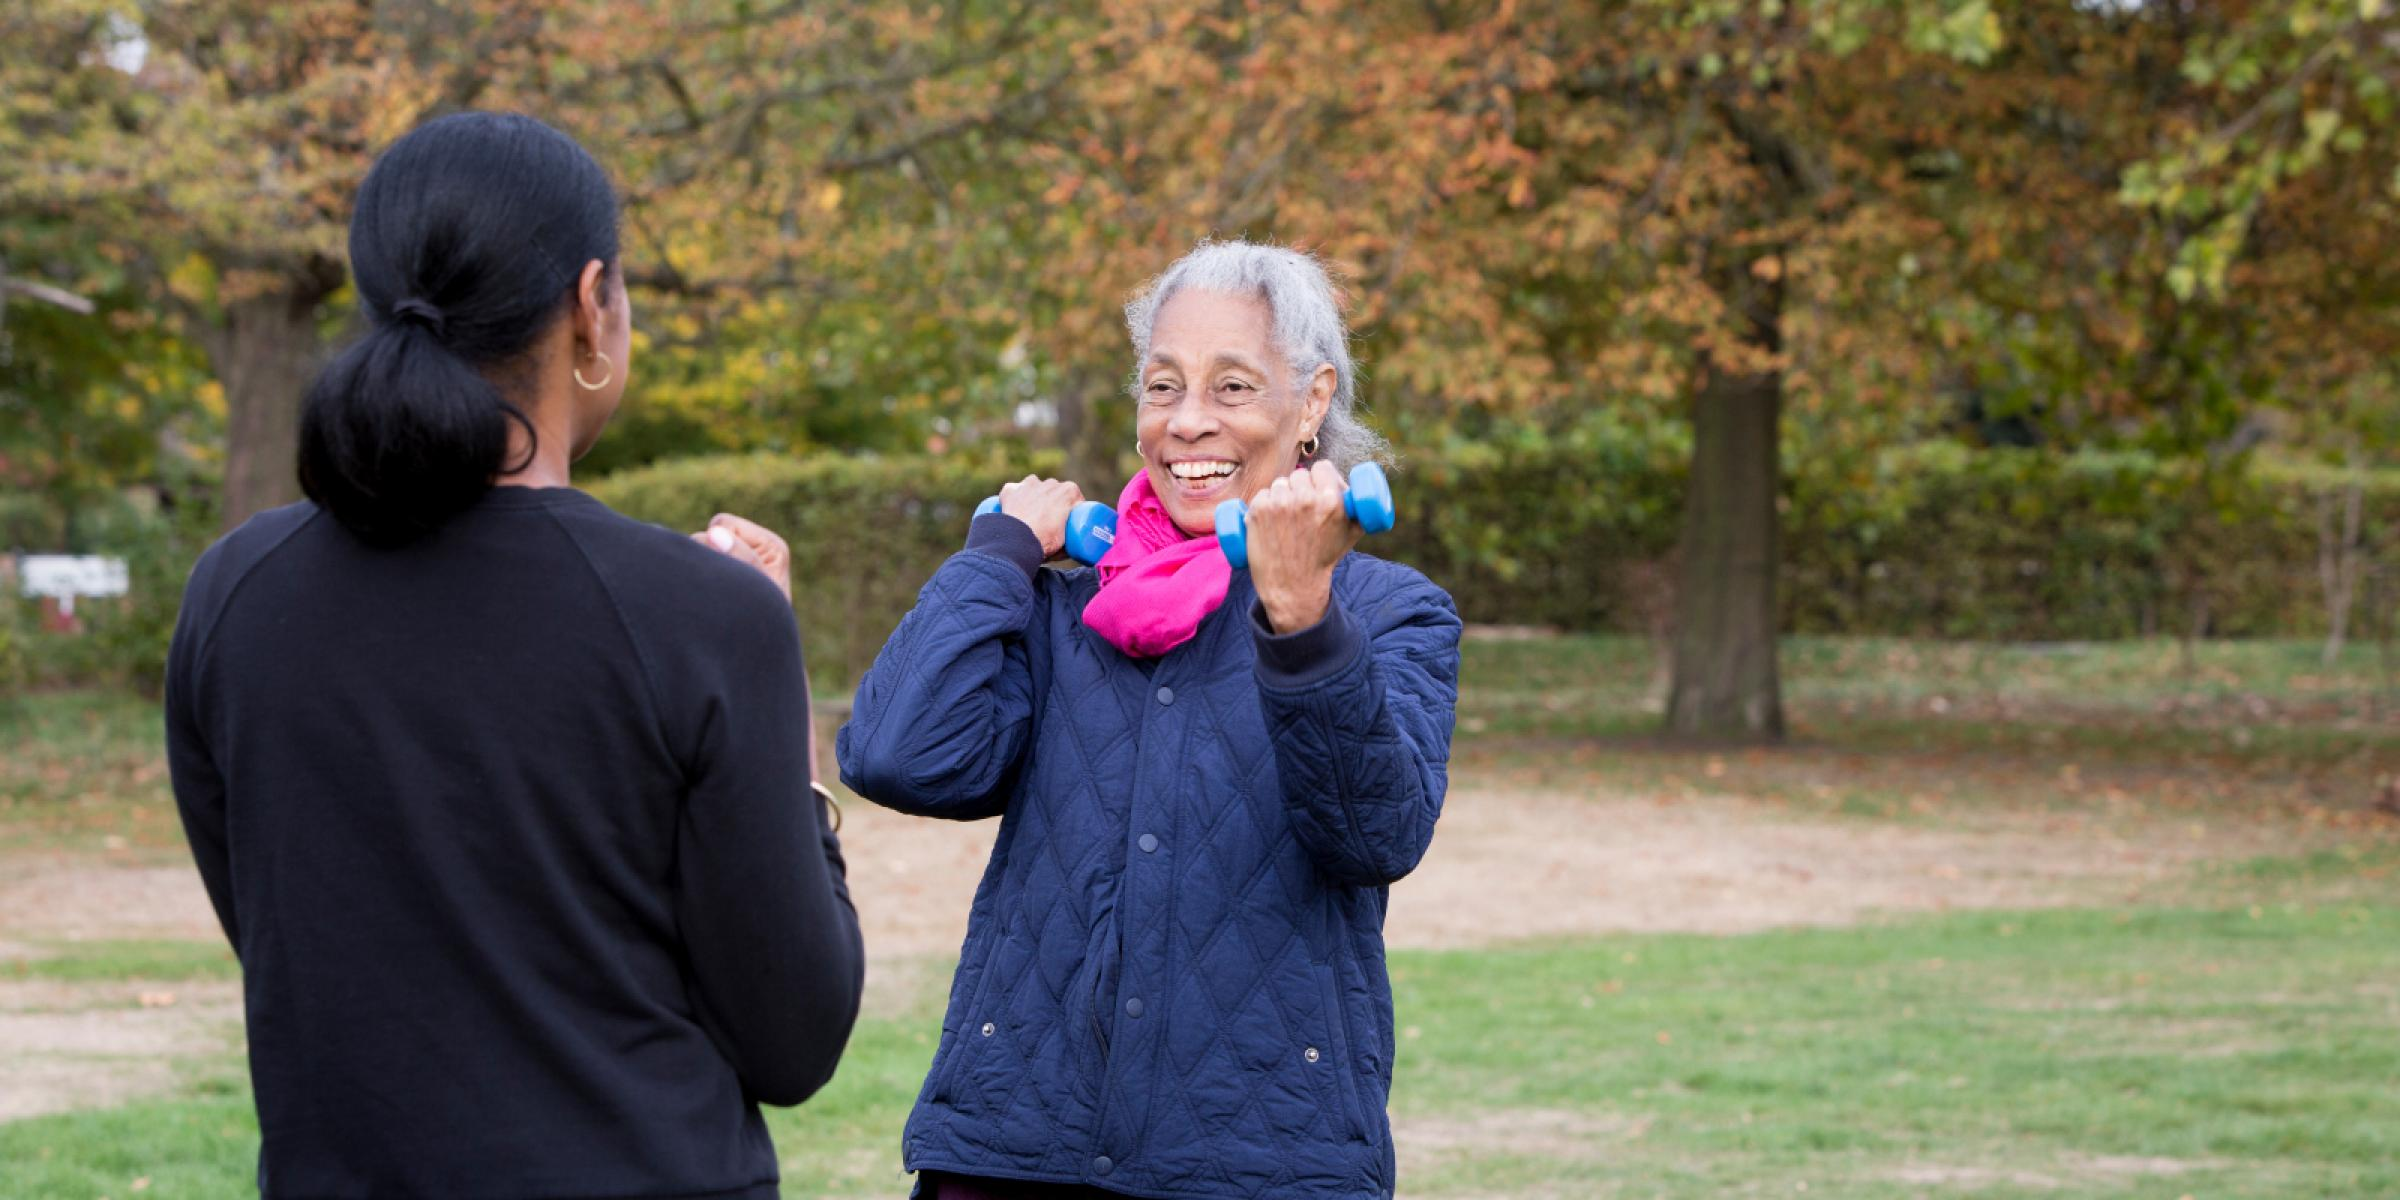 Daphne and Michelle outside in a park enjoying light exercise